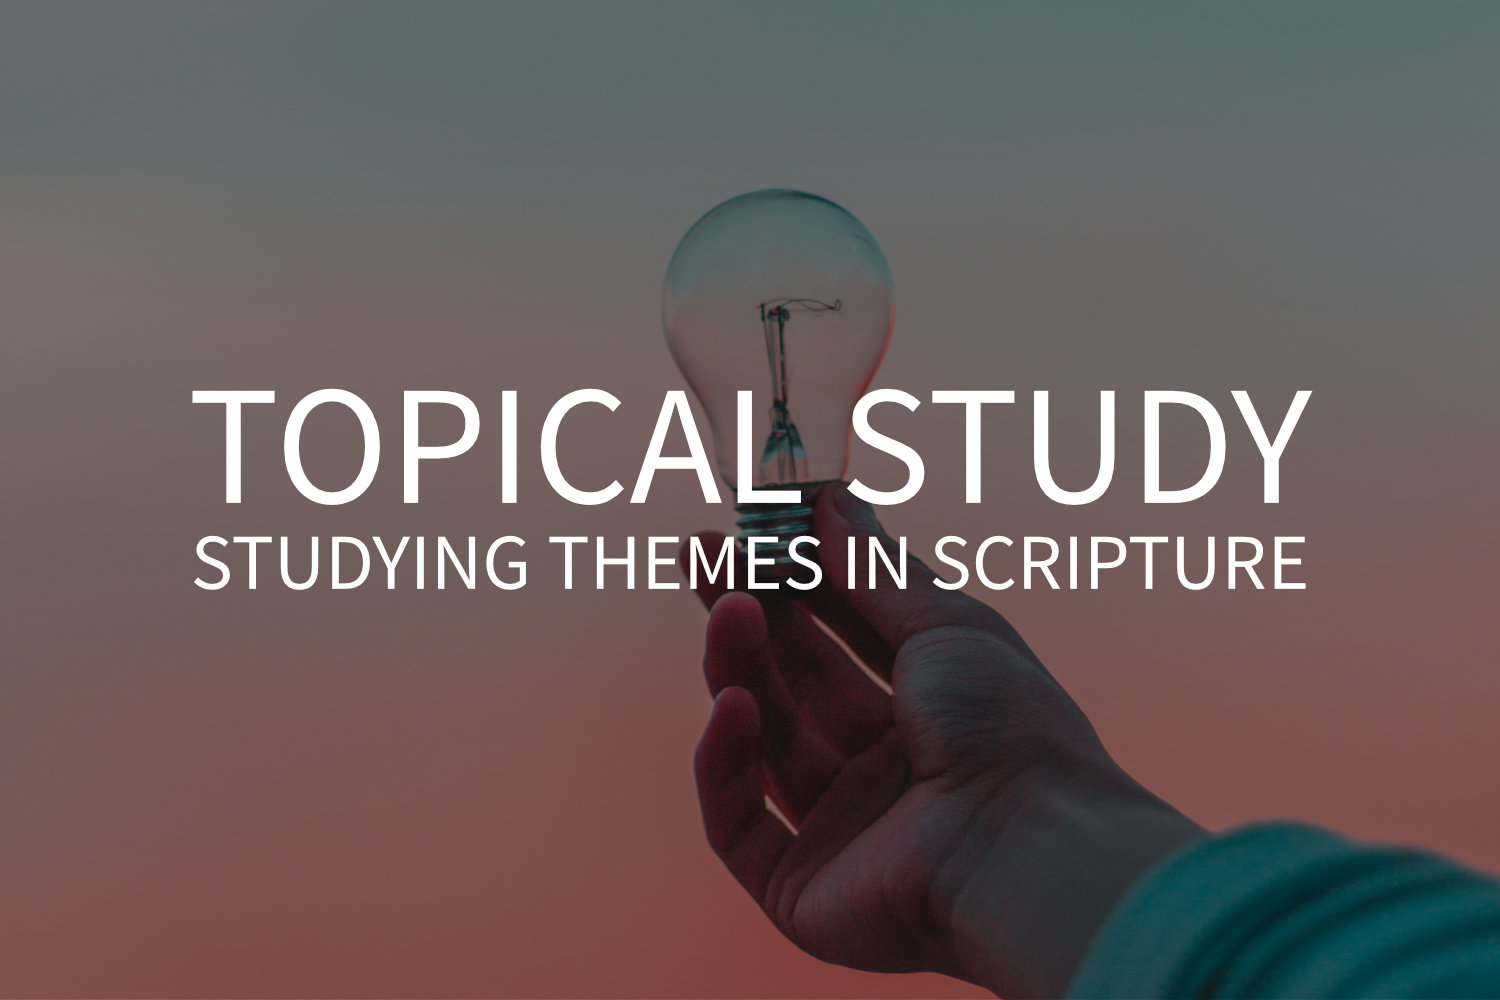 Topical Study: How to Study Themes in Scripture